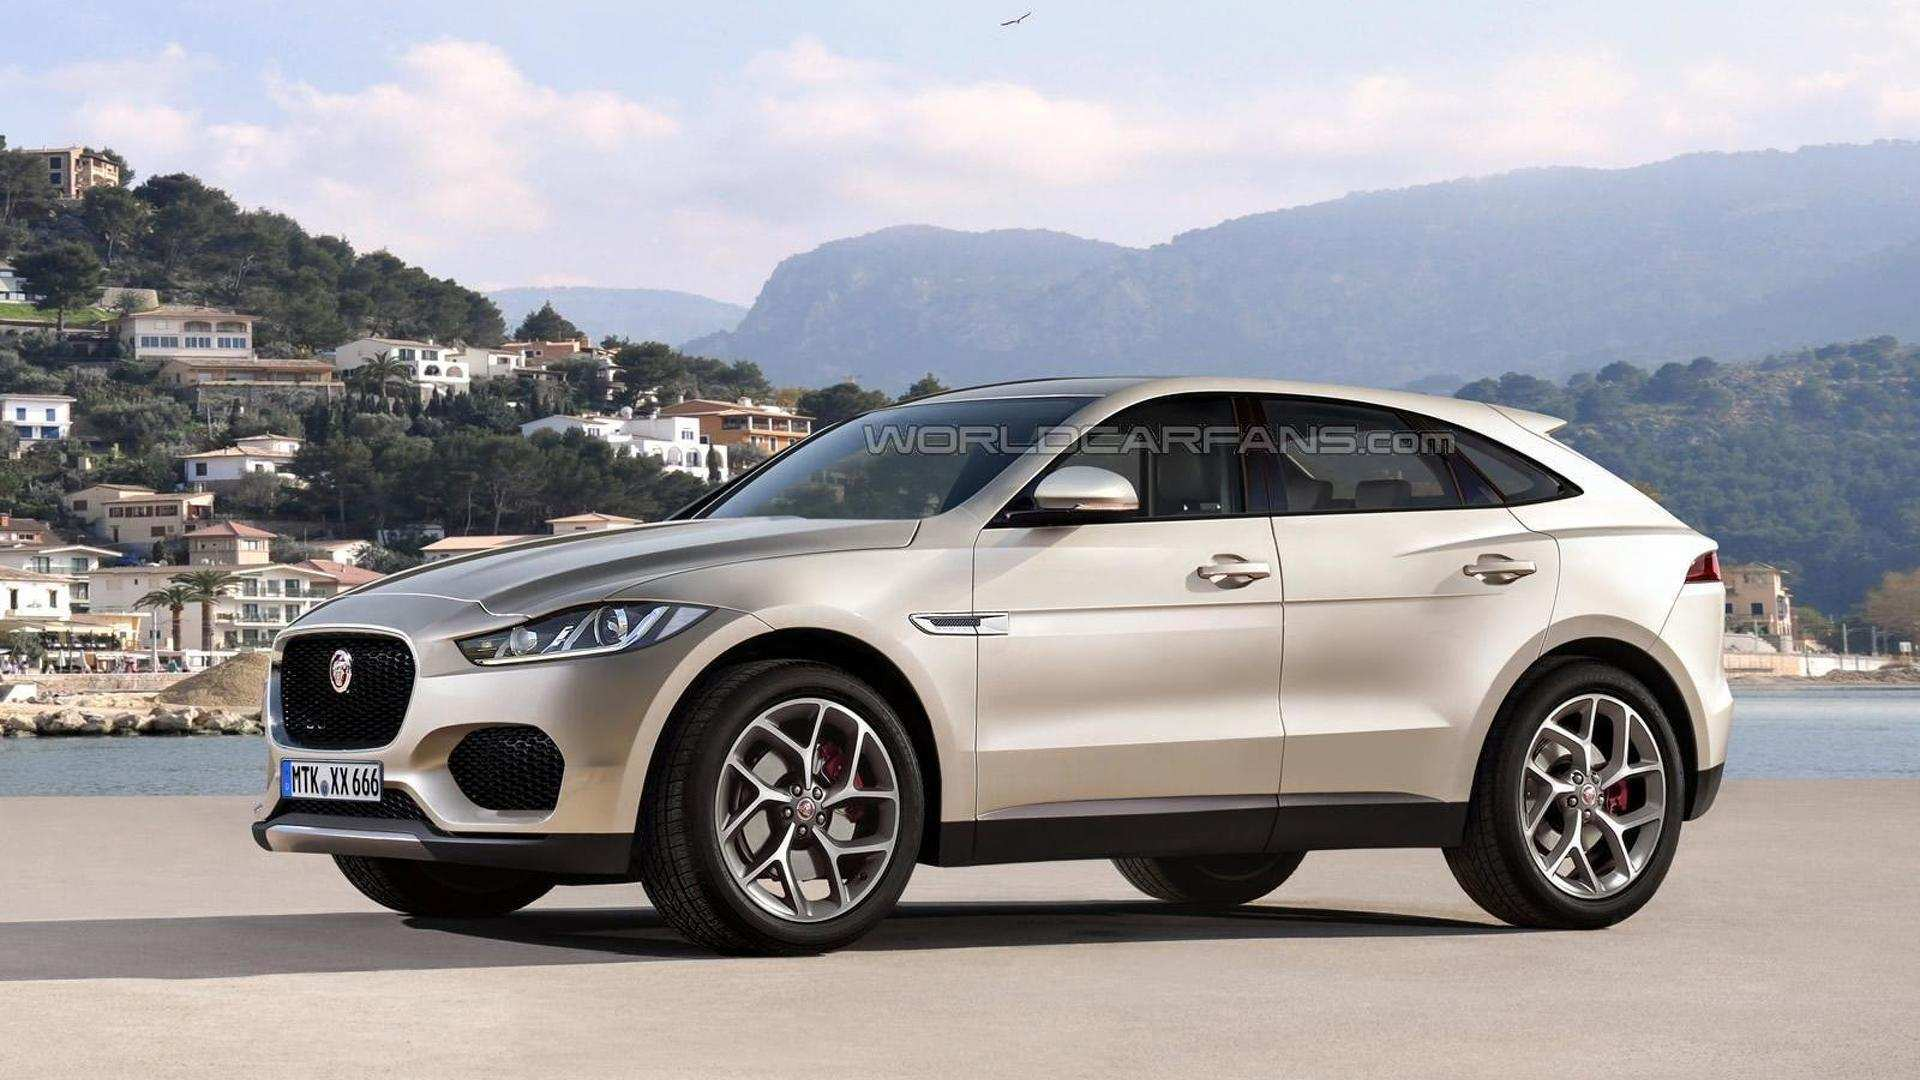 32 Great 2020 Jaguar I Pace Electric Release Date with 2020 Jaguar I Pace Electric